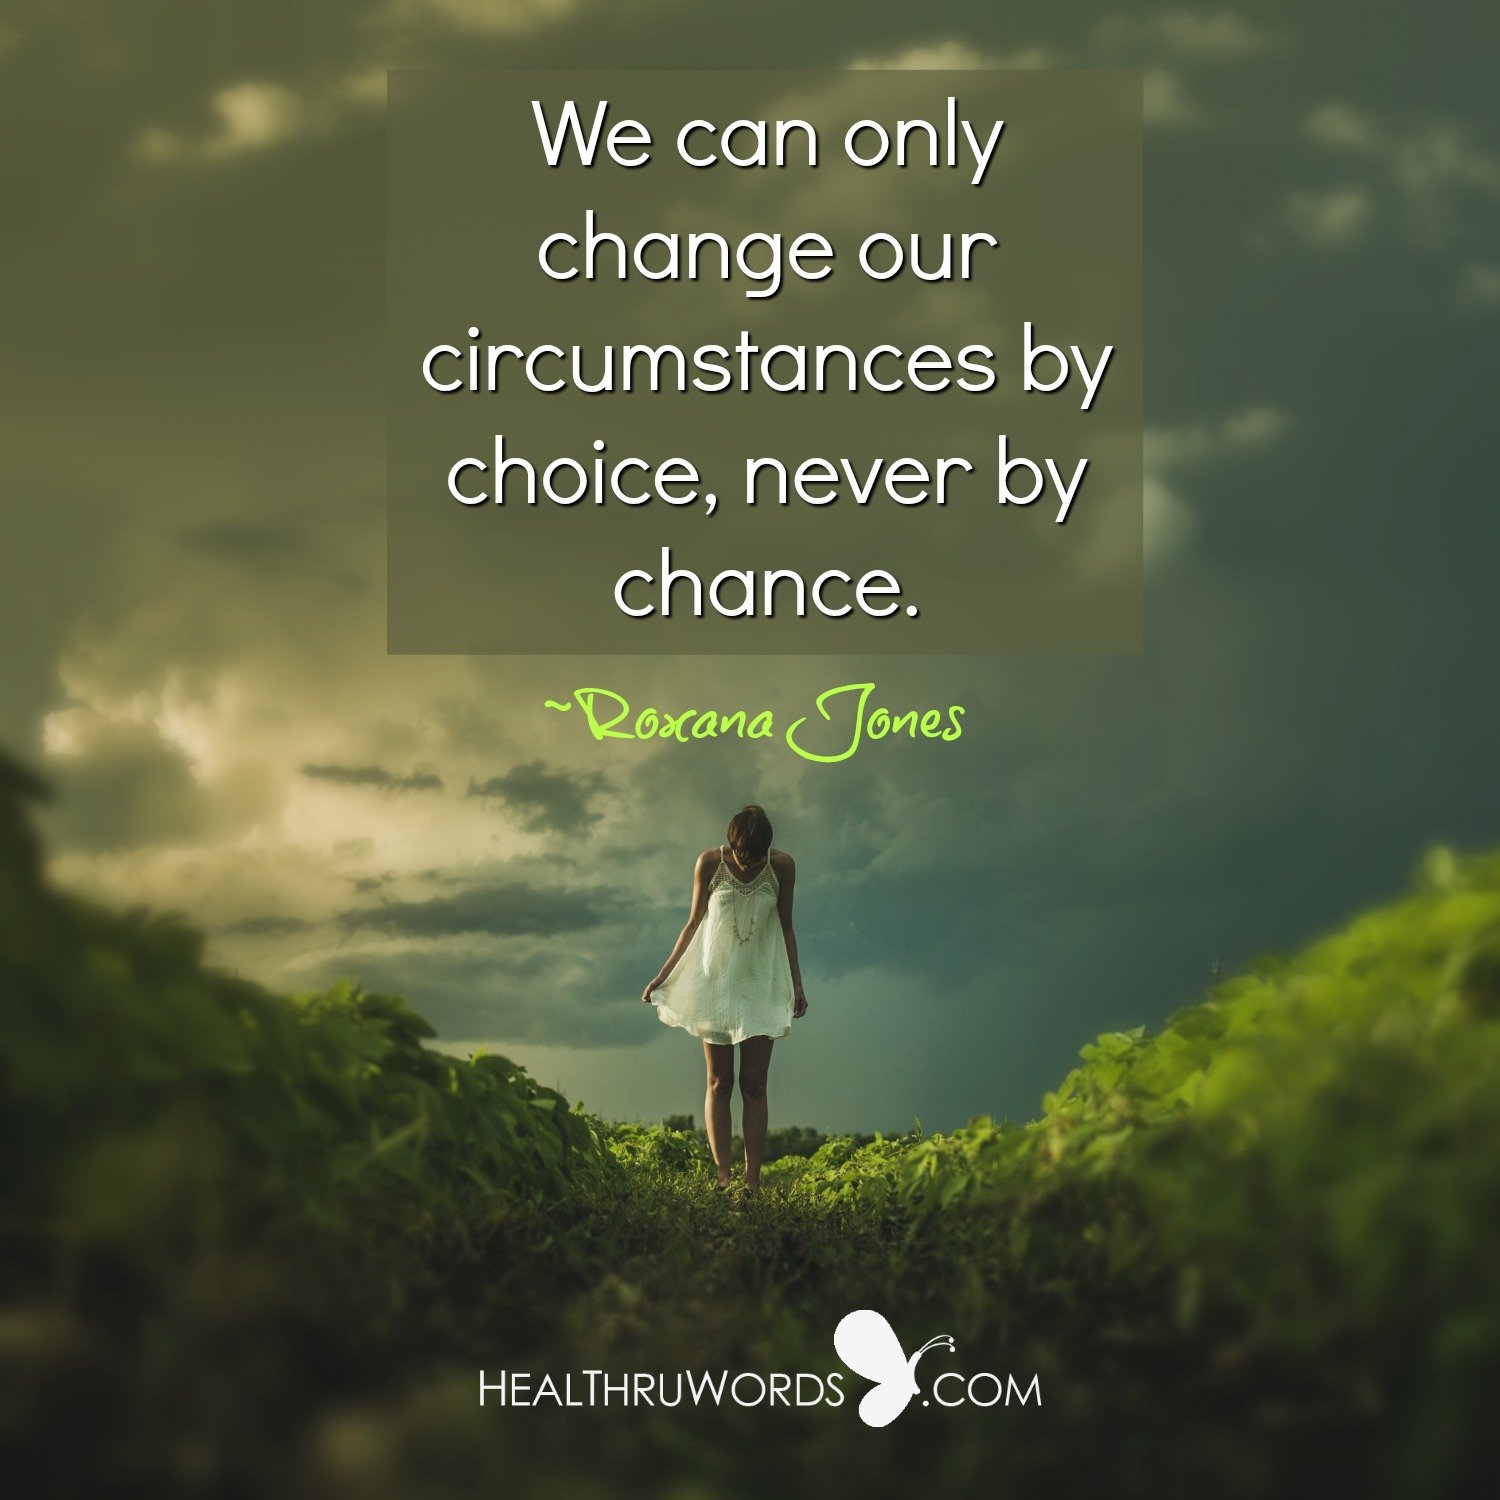 Inspirational Image: Choice or Chance